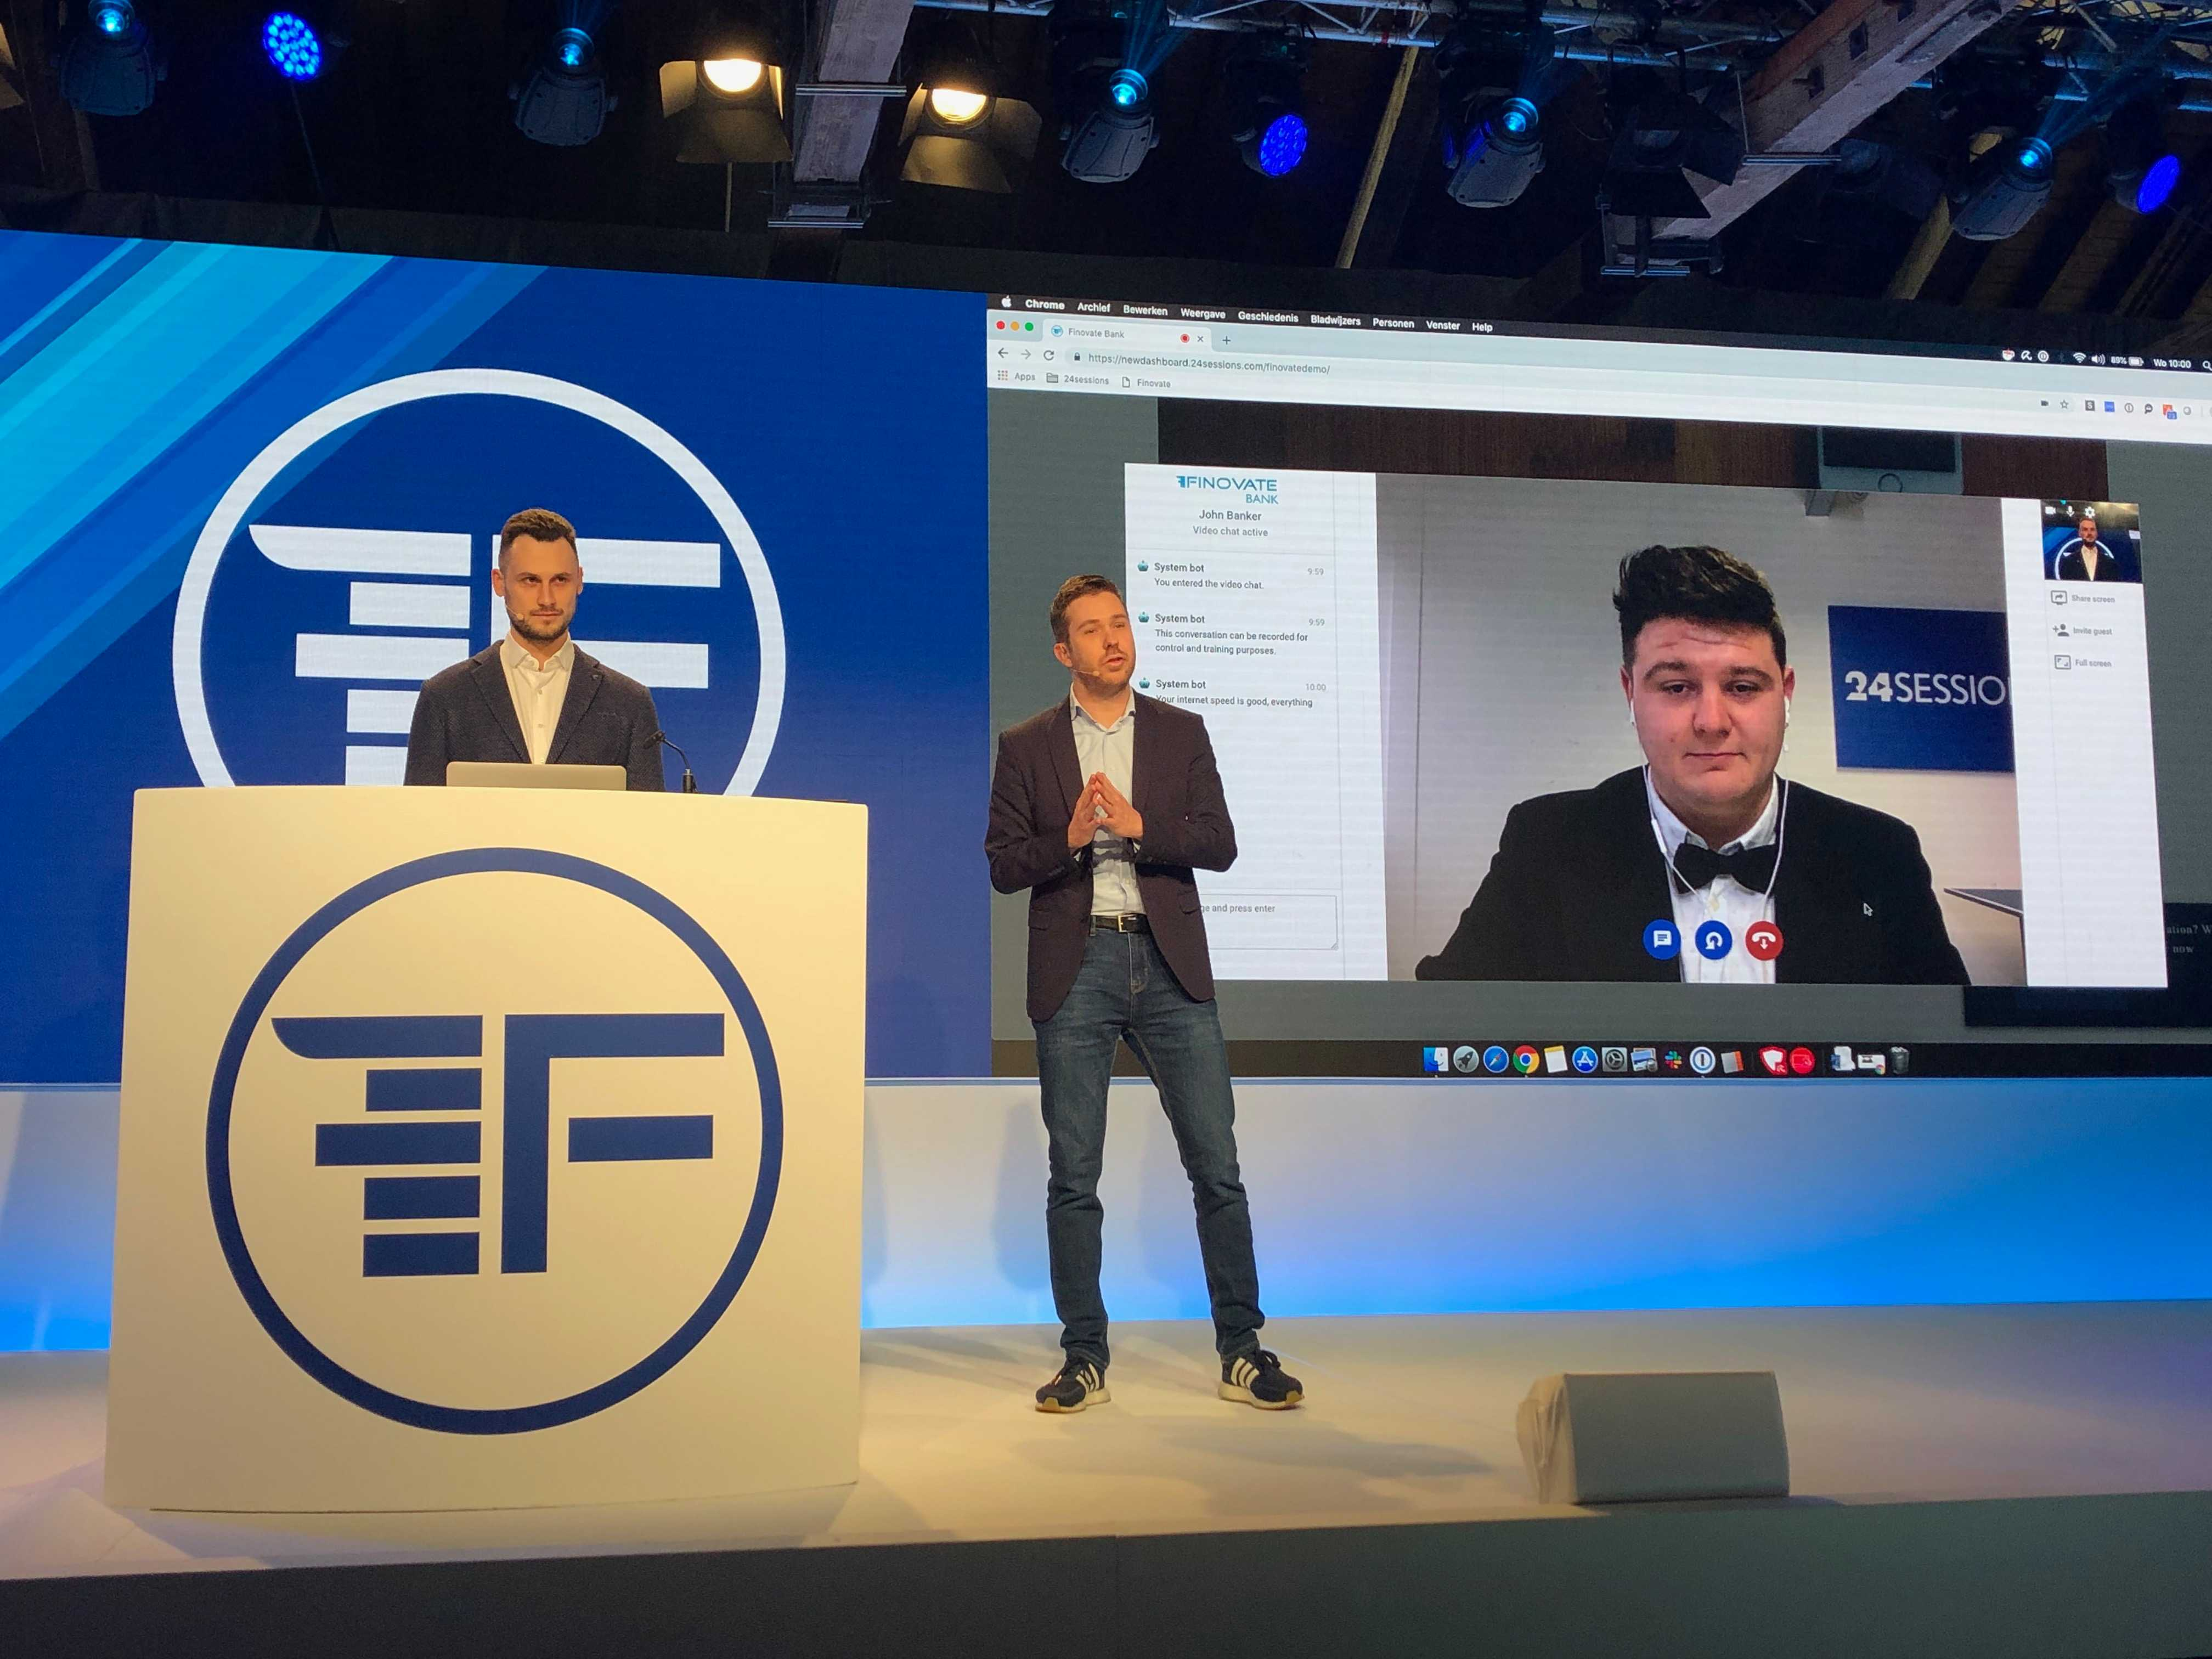 Bringing Video Banking to Finovate Europe 2019